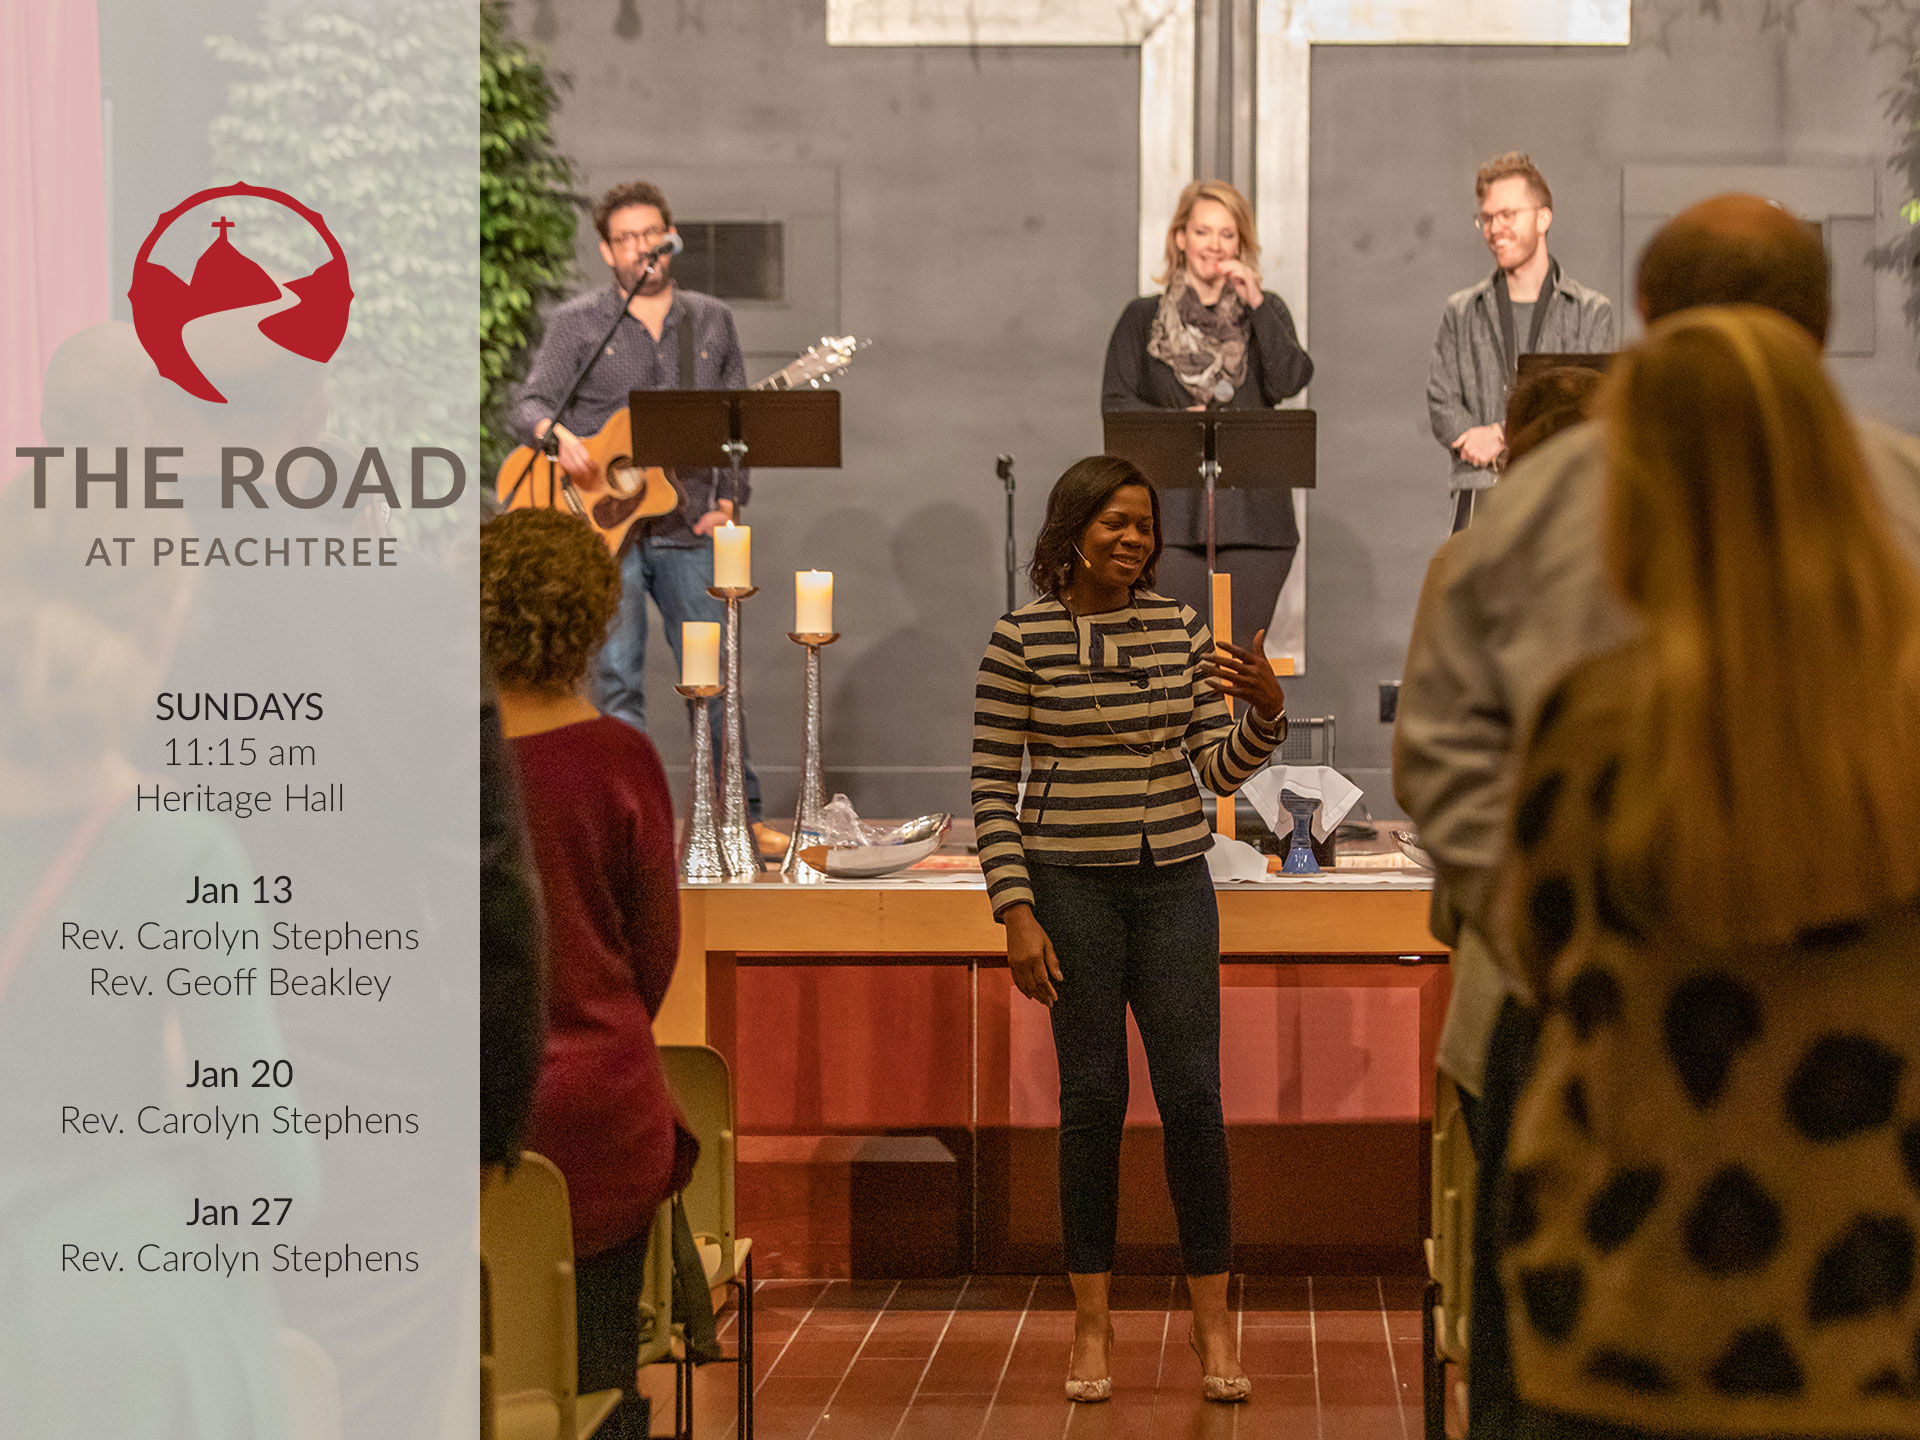 The Road Worship Service